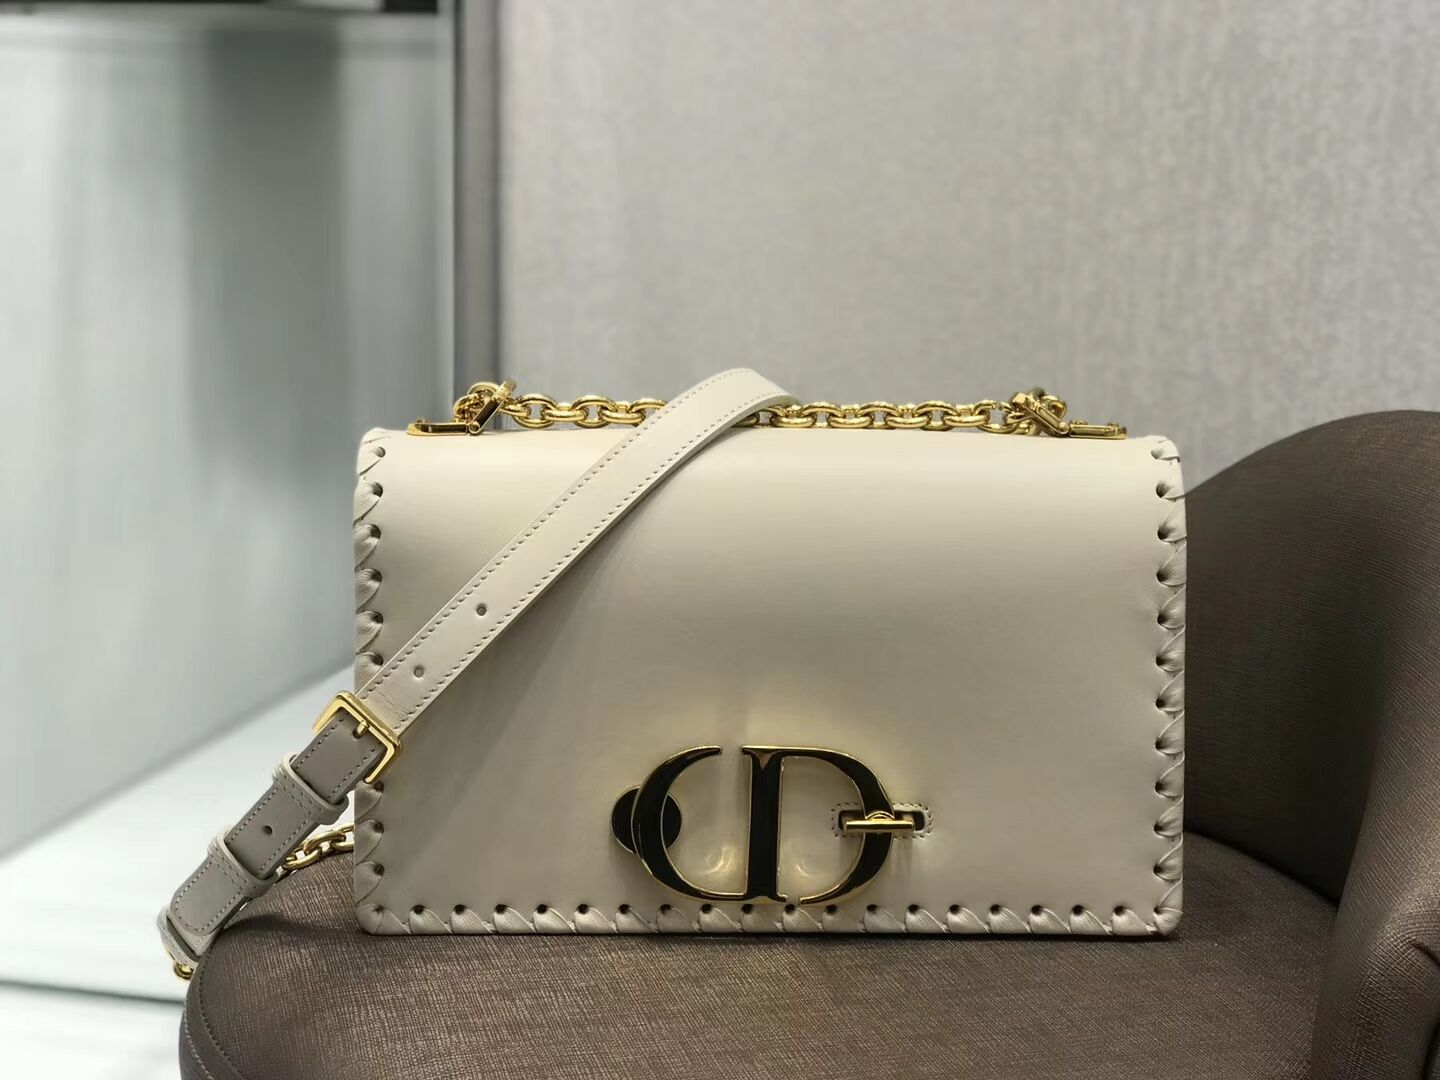 CHALK WHITE DIOR 30 MONTAIGNE THREADED EDGES CALFSKIN FLAP CHAIN BAG  M9220